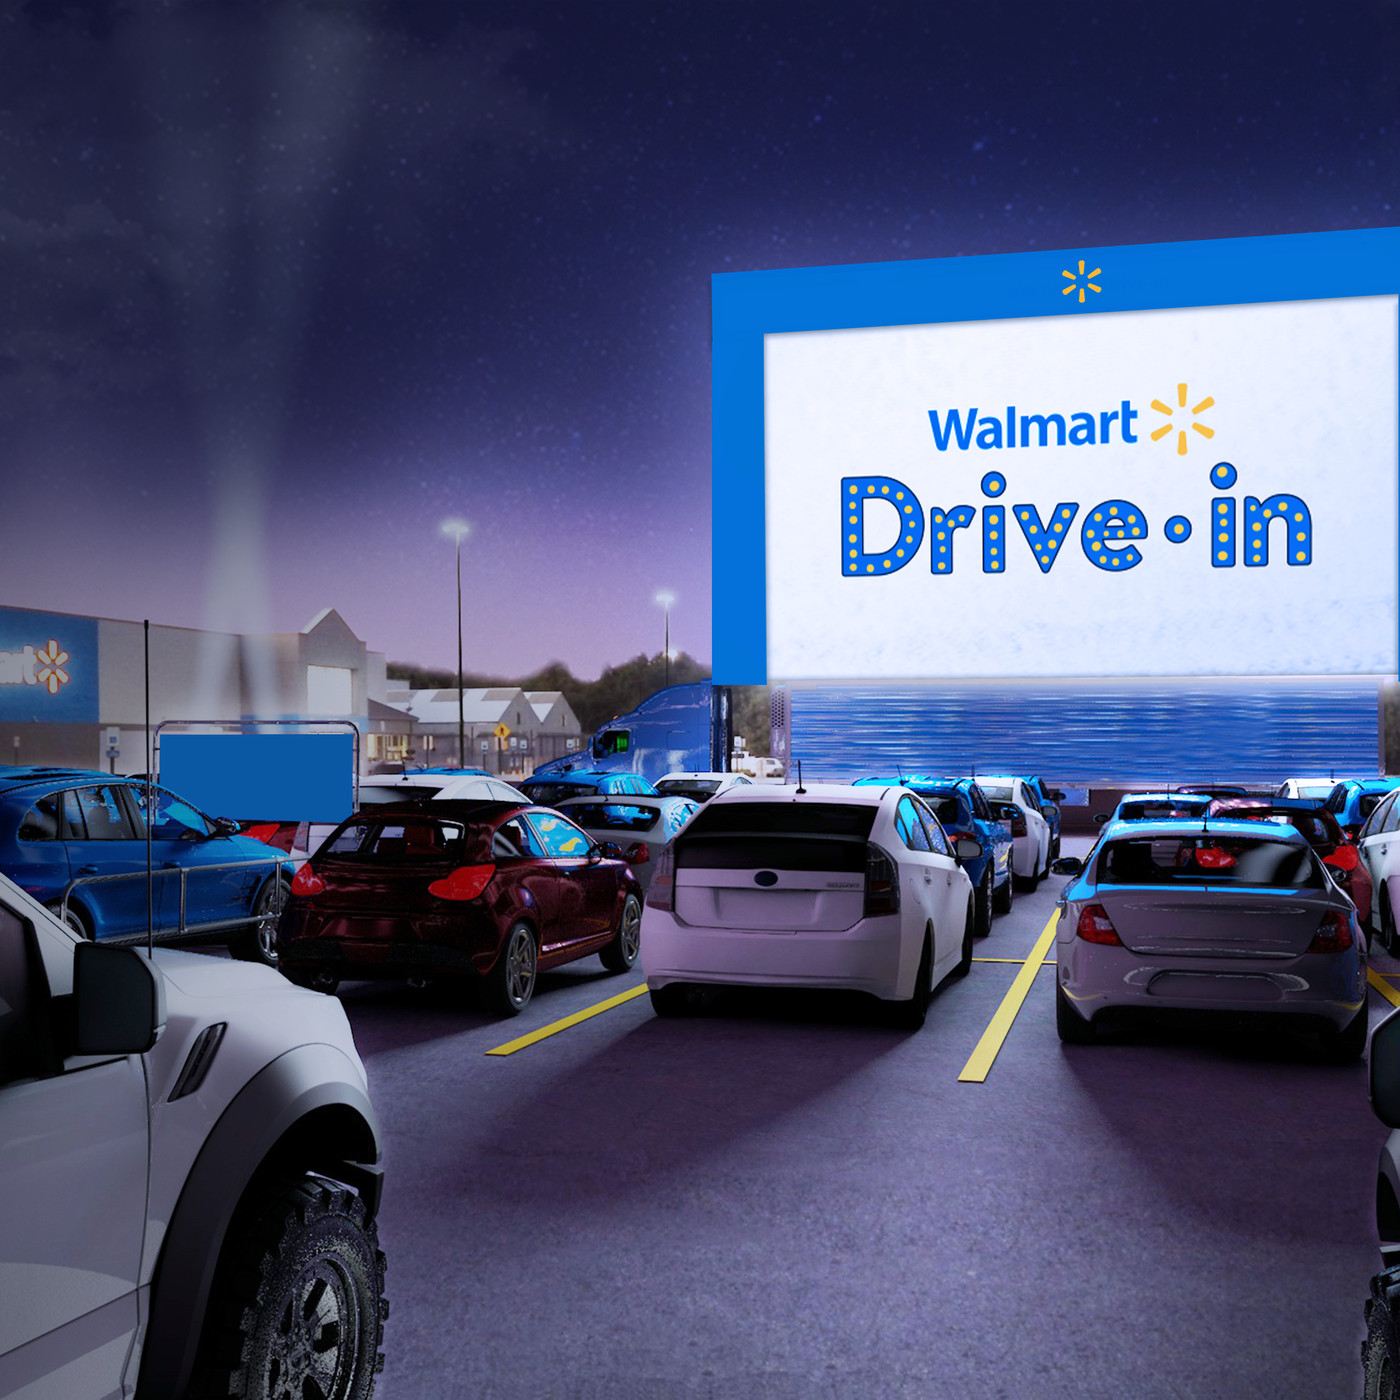 Walmart Is Converting Its Parking Lots Into Drive In Theaters For The Summer The Verge